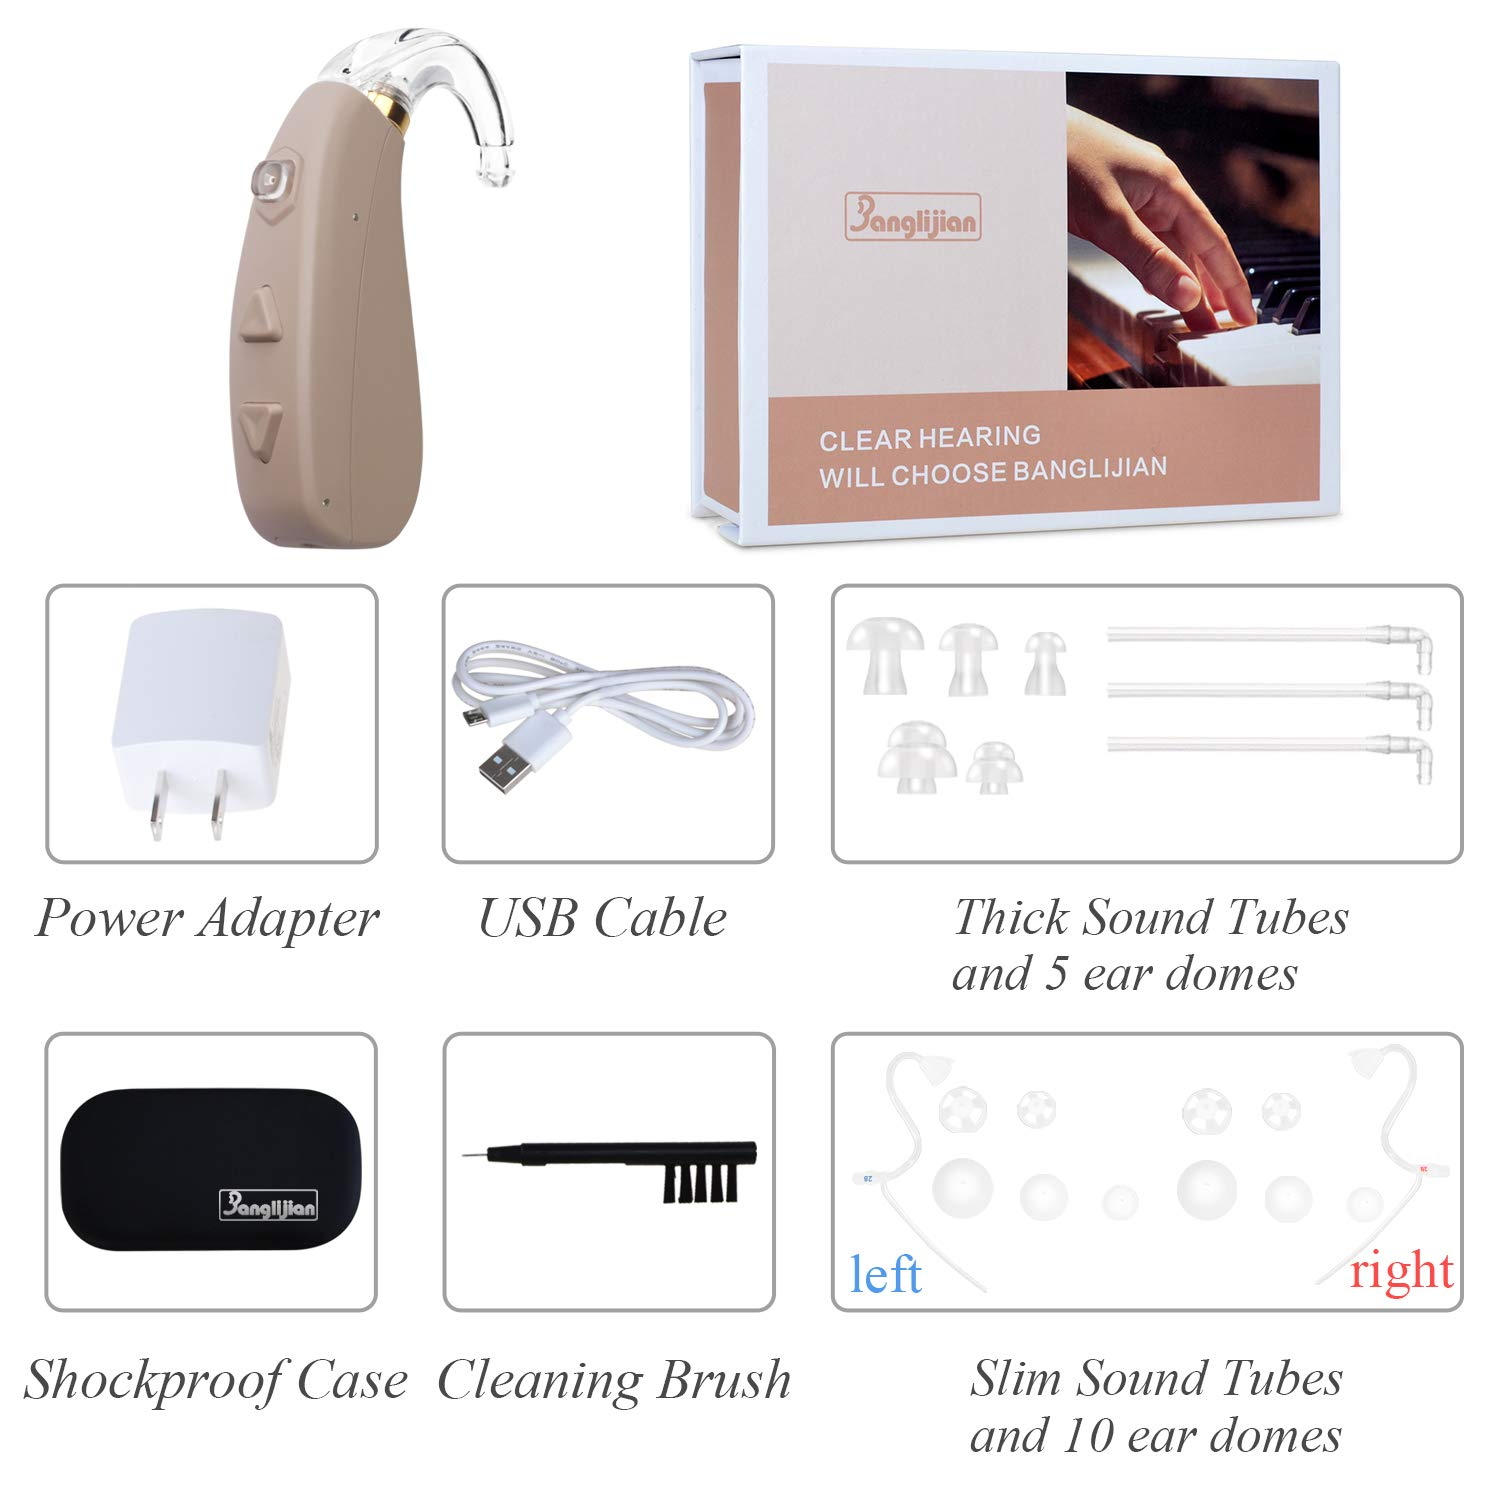 Banglijian Hearing Amplifier Rechargeable Ziv-206 with 4 Channels Layered Noise Reduction Adaptive Feedback Cancellation-with Two Types of Sound Tubes by Banglijian (Image #6)